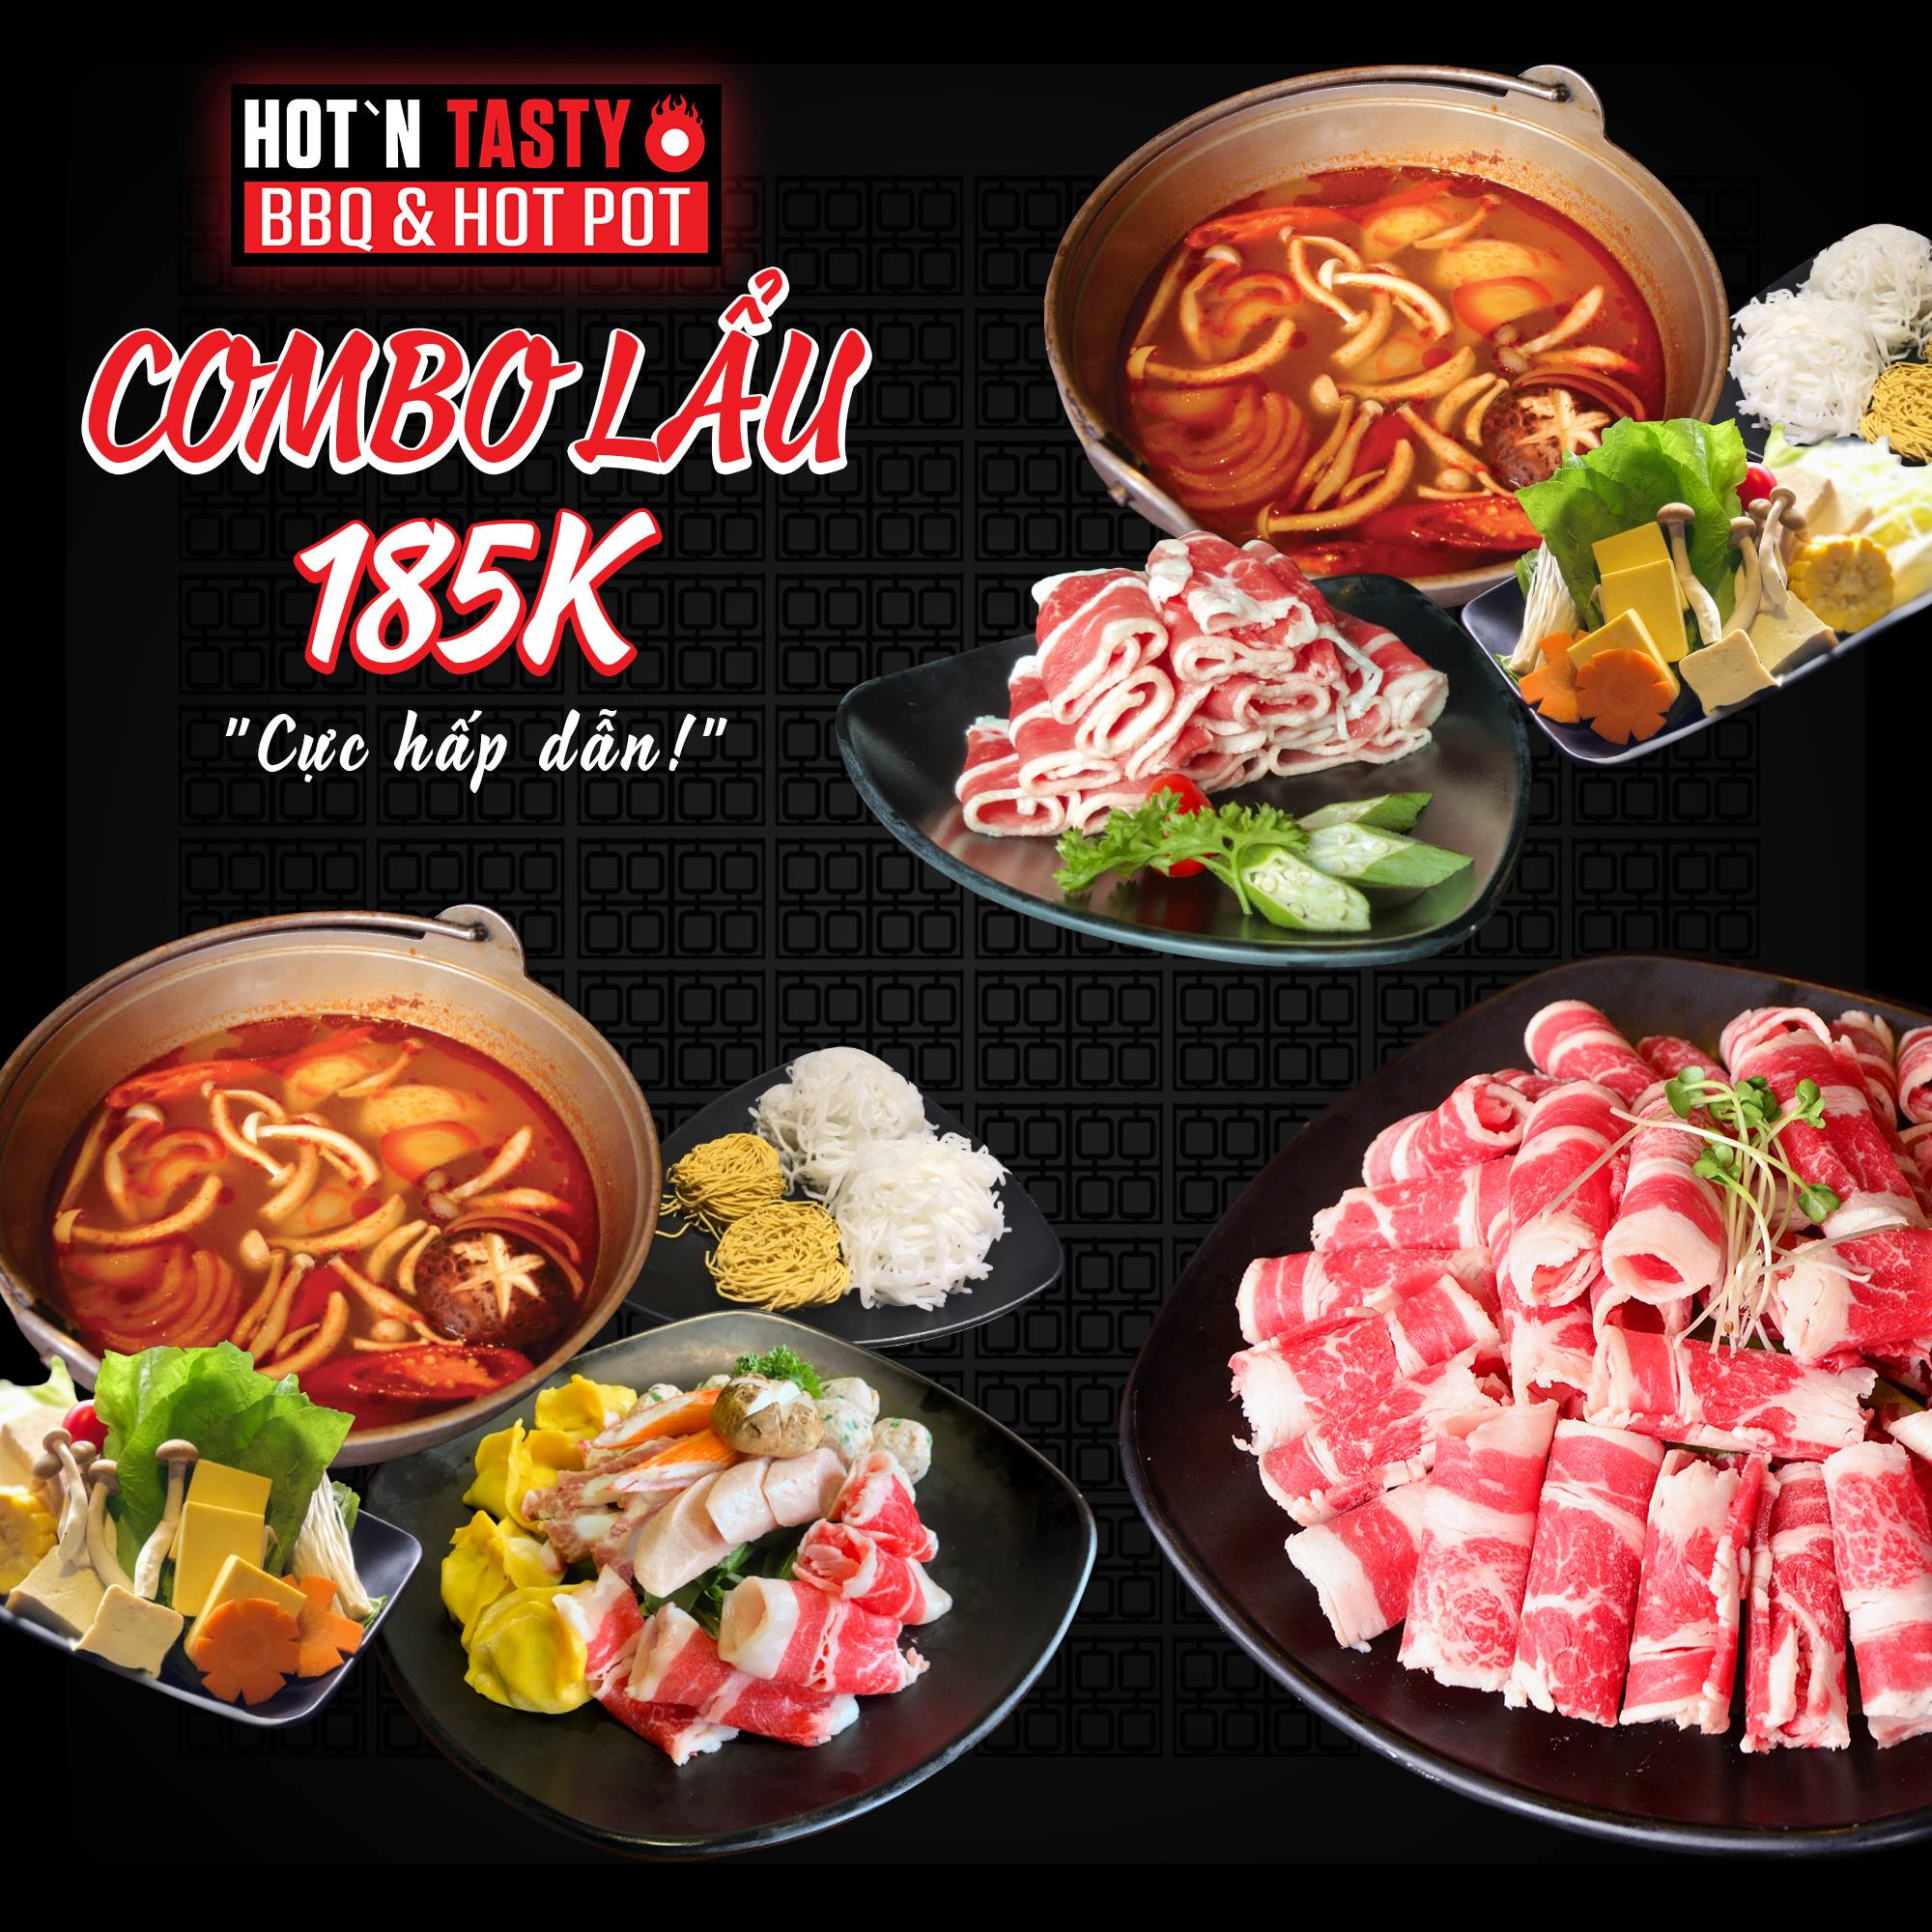 Hot N Tasty menu combo